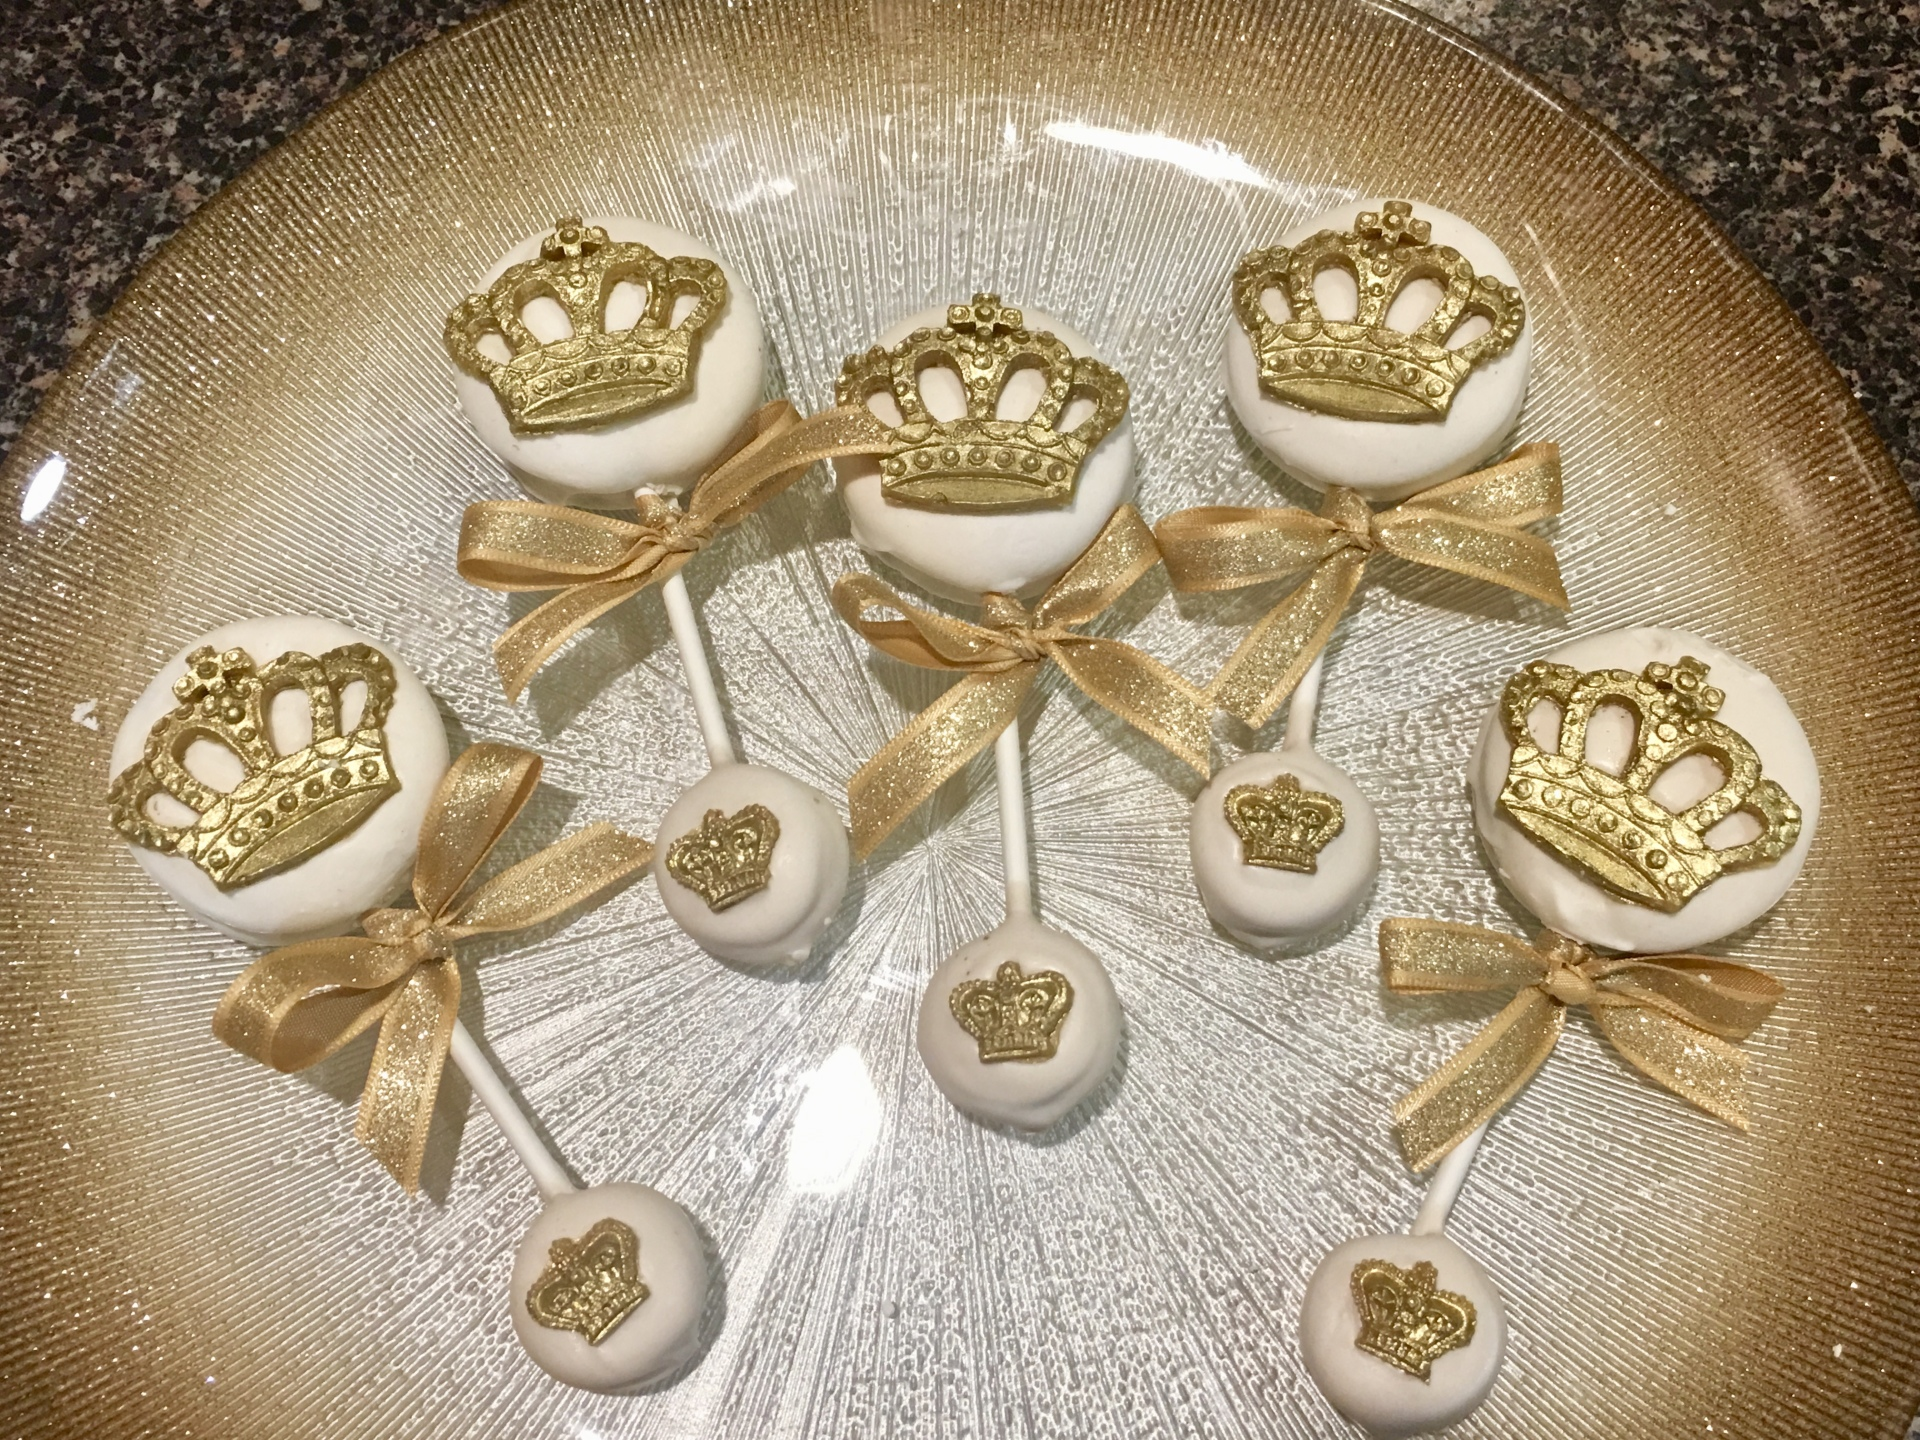 Ivory and Gold Crown Rattle Chocolate Covered Oreos